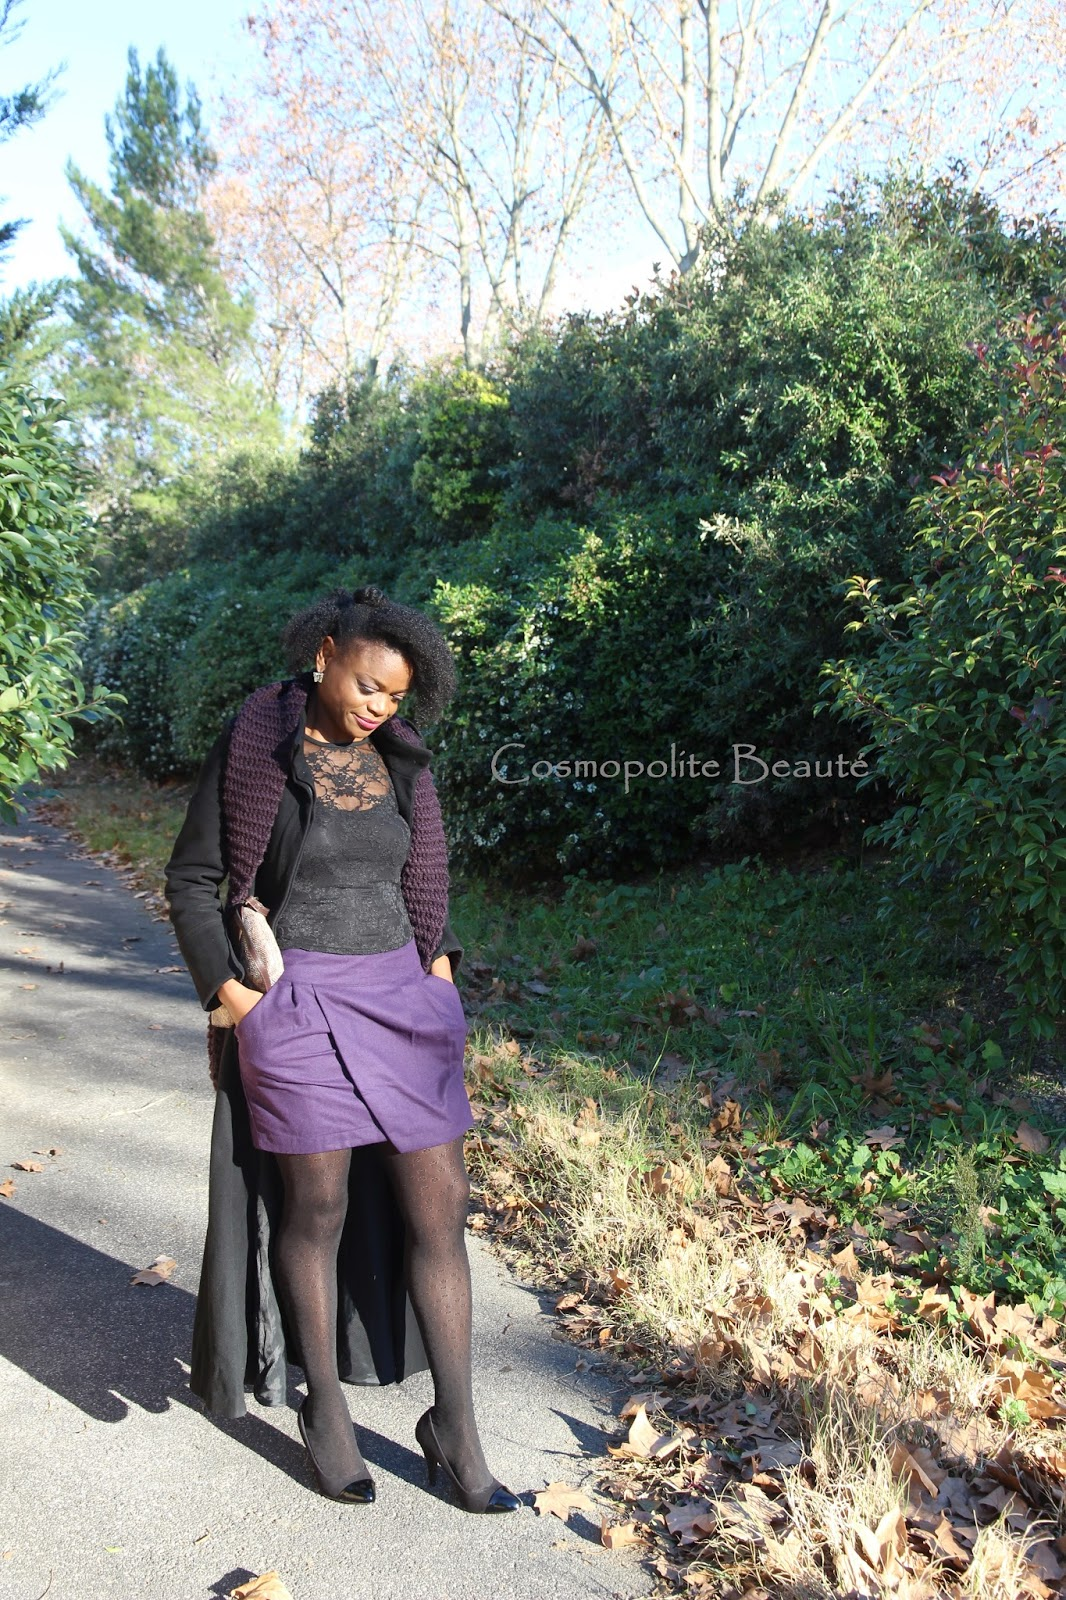 Cosmopolitan beauty, Cosmopolite beaute, lookbook, mode, fashion, look saint Valentin, écharpe, violet, jupe, skirt, scarf, kinky hair, cheveux bouclés, cheveux crepus, nappy